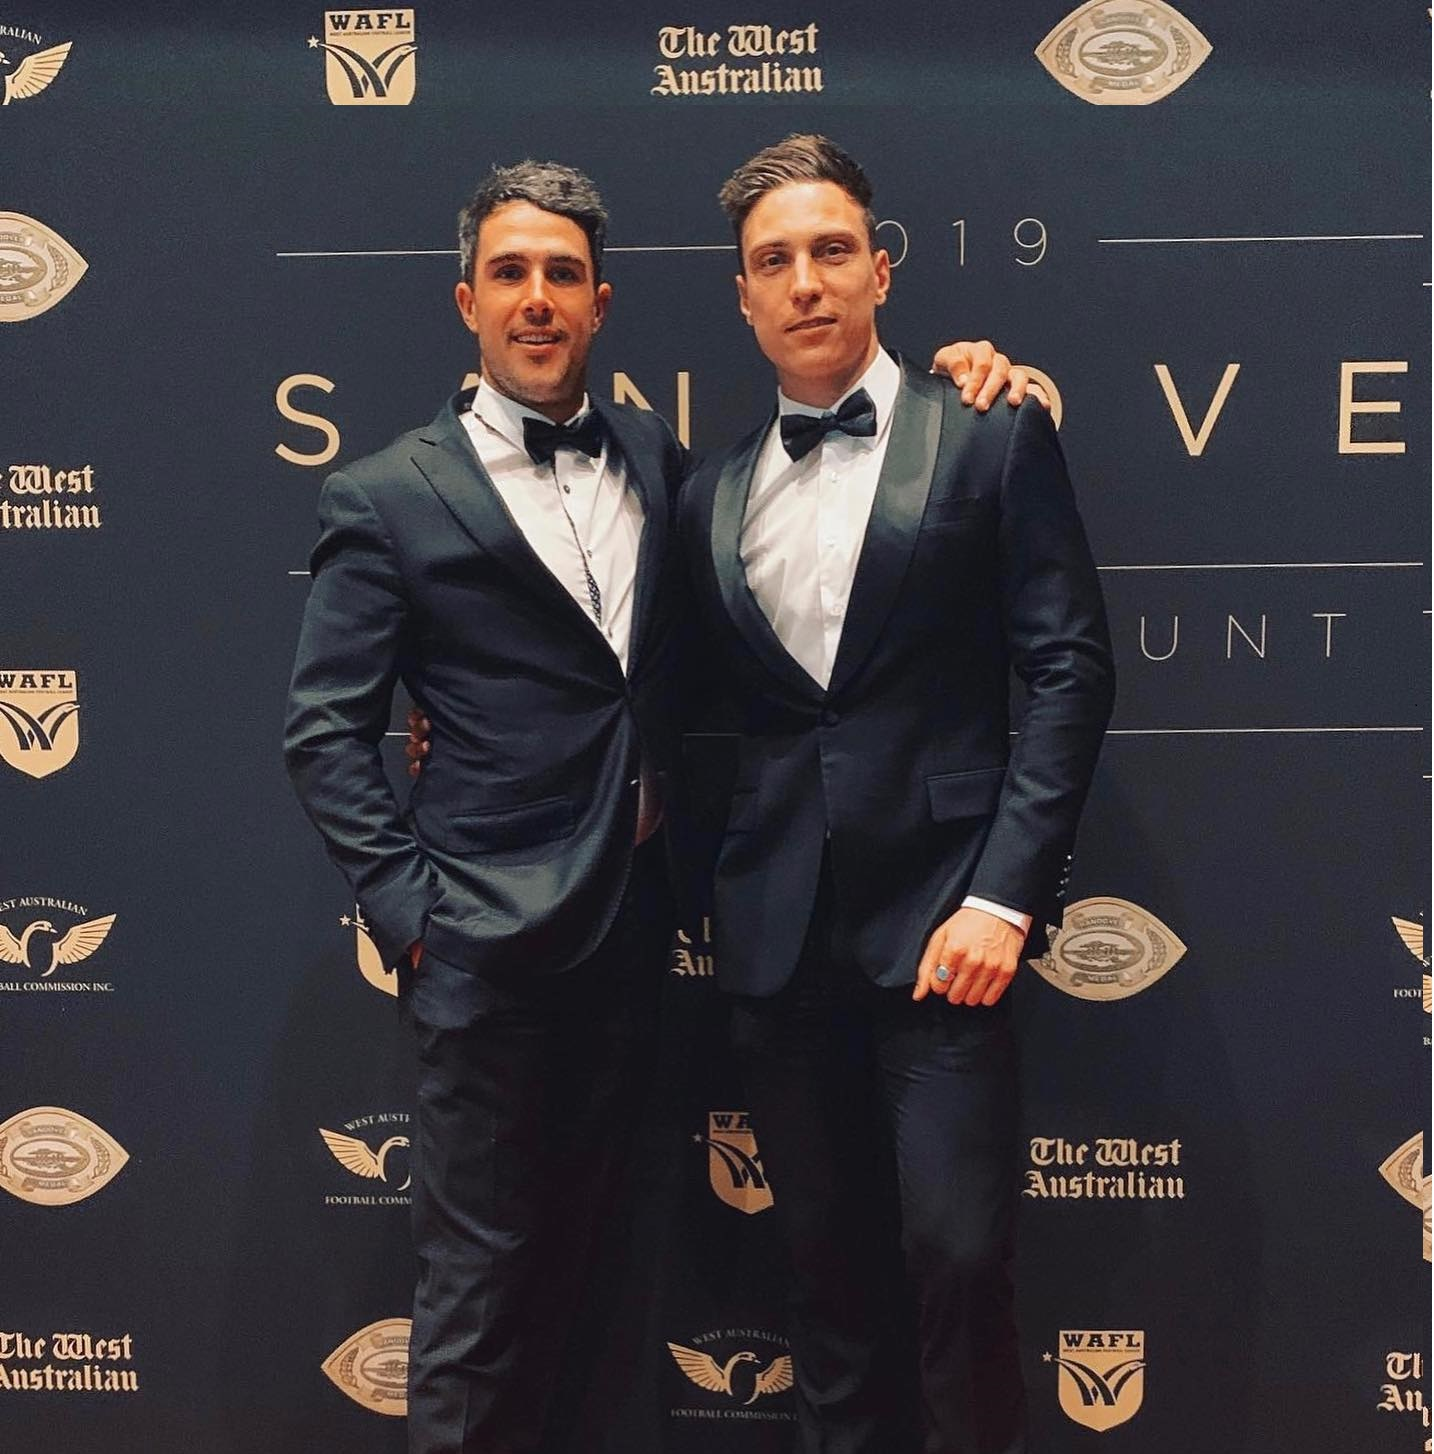 men-wearing-matching-black-tie-suits-with-bow-tie